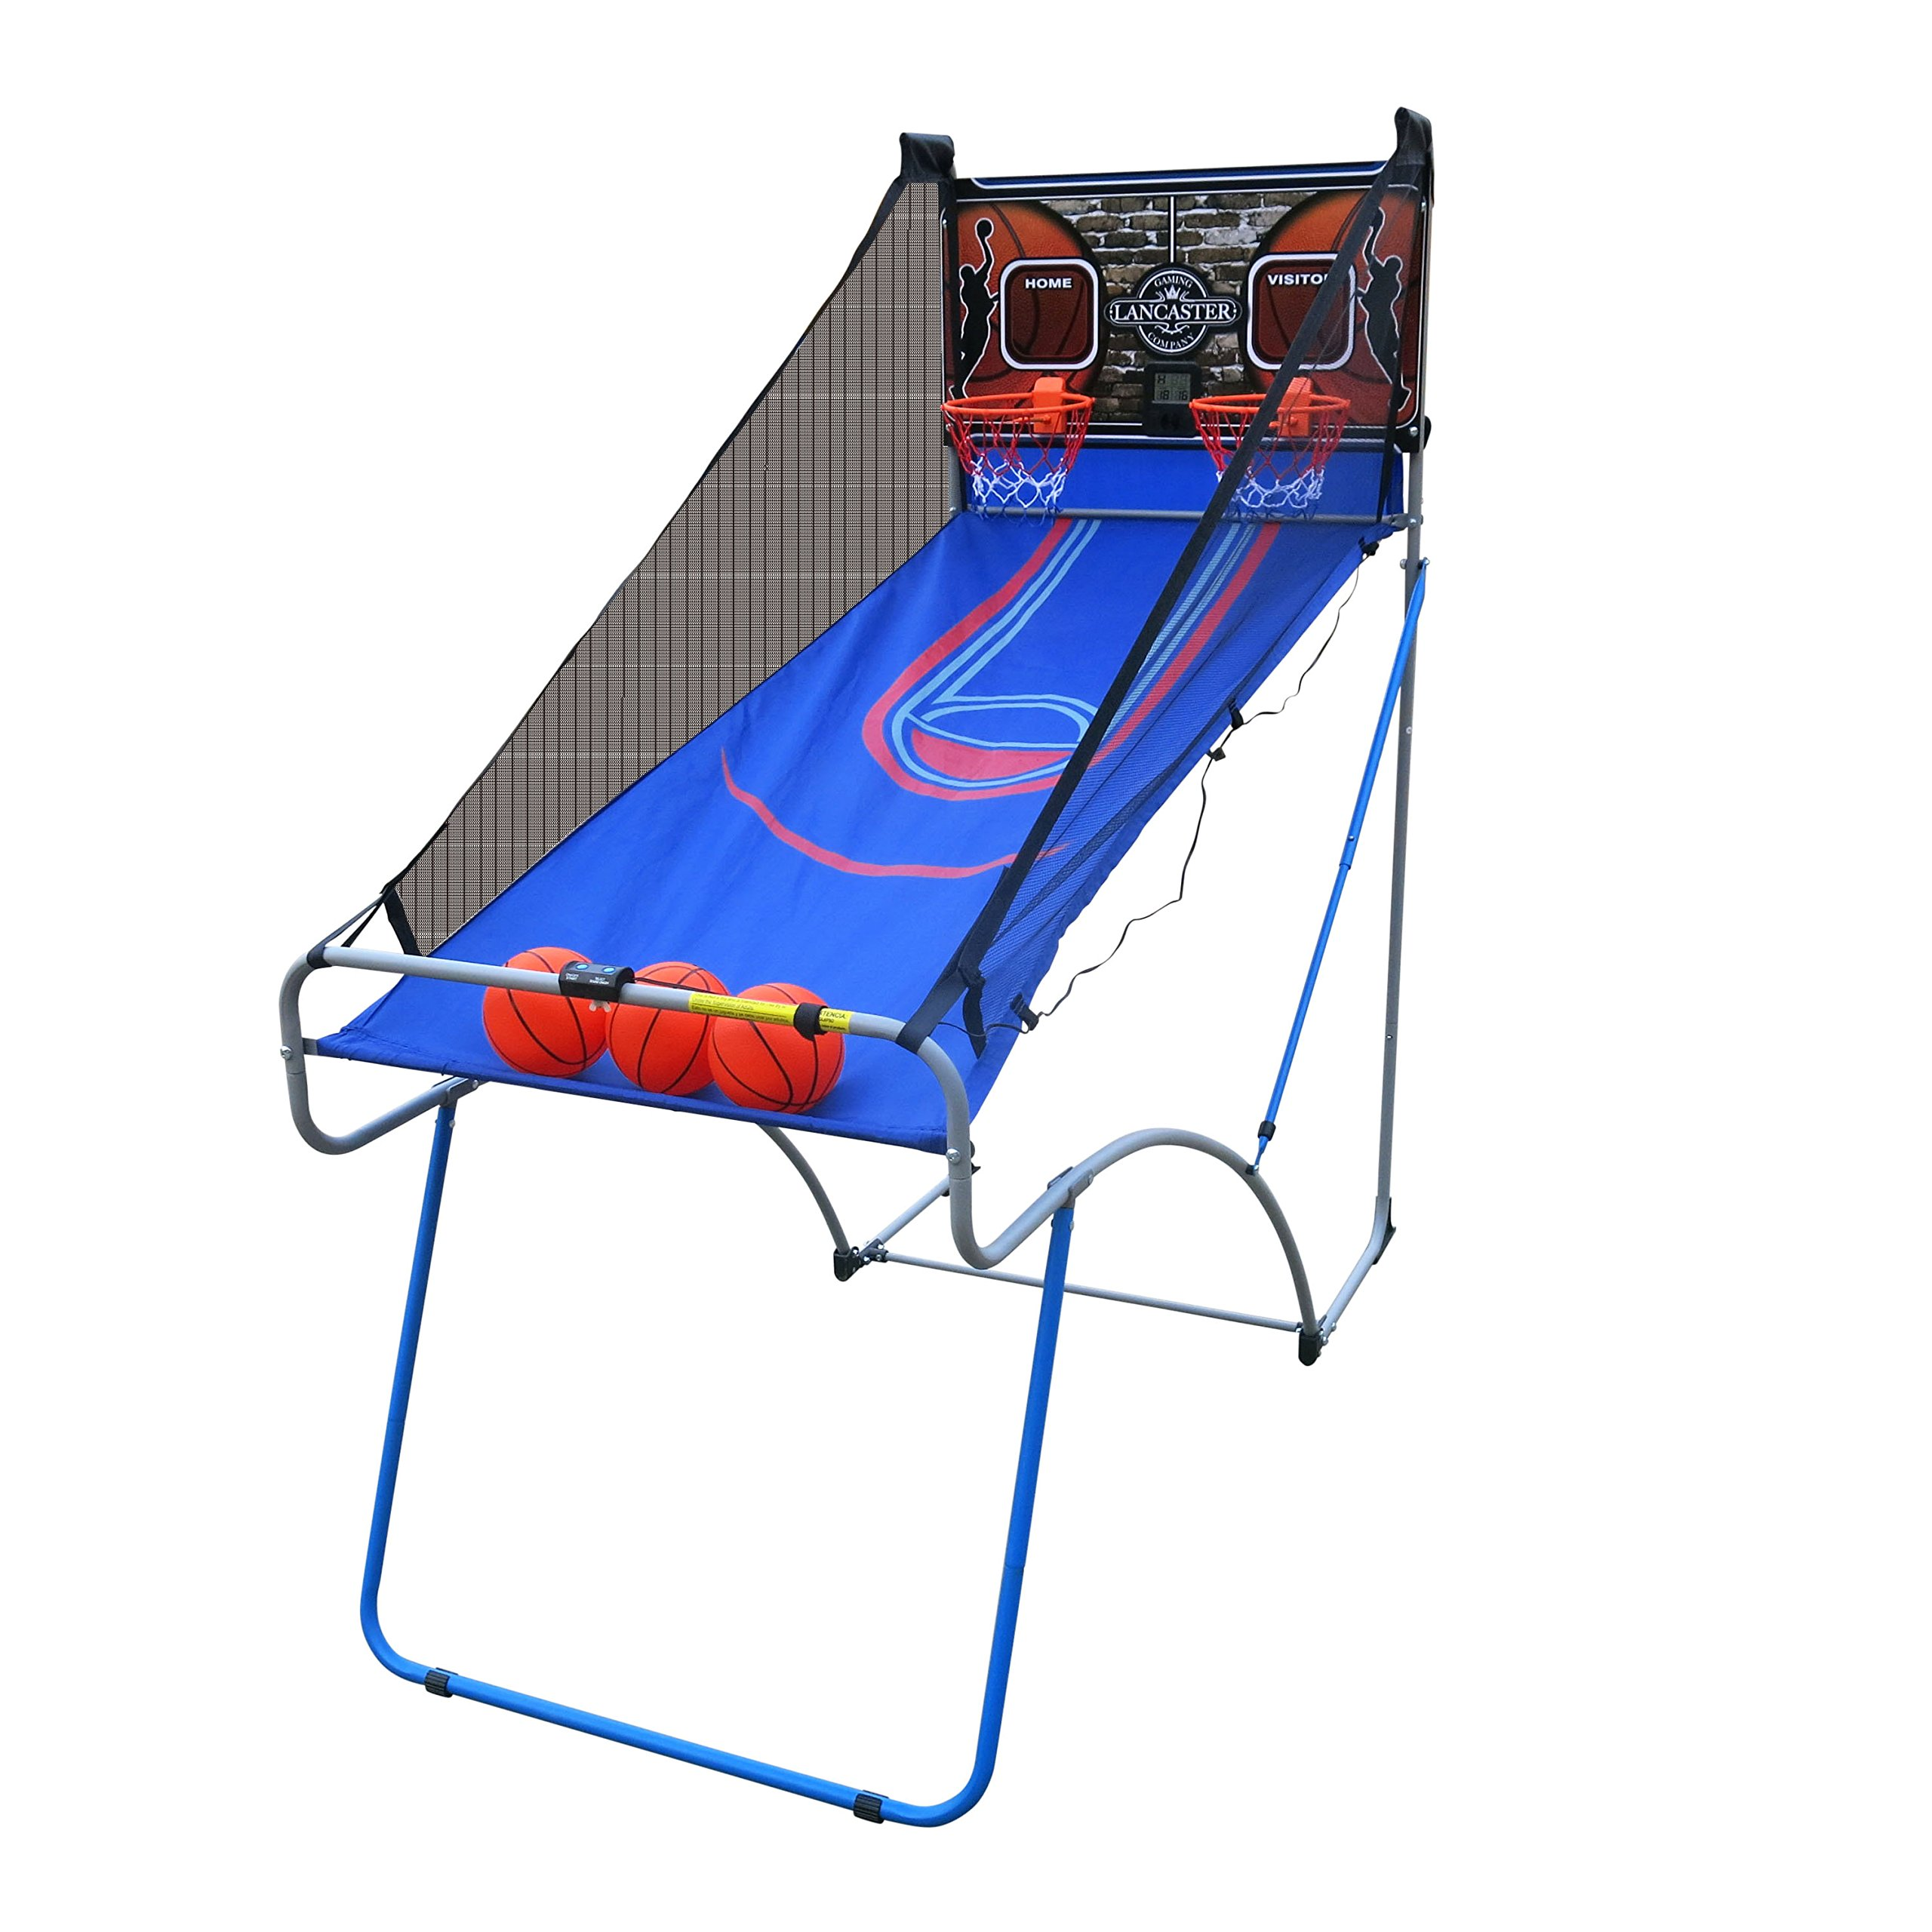 Lancaster Sports EZ-Fold 2 Player Indoor Traditional Arcade Basketball Game